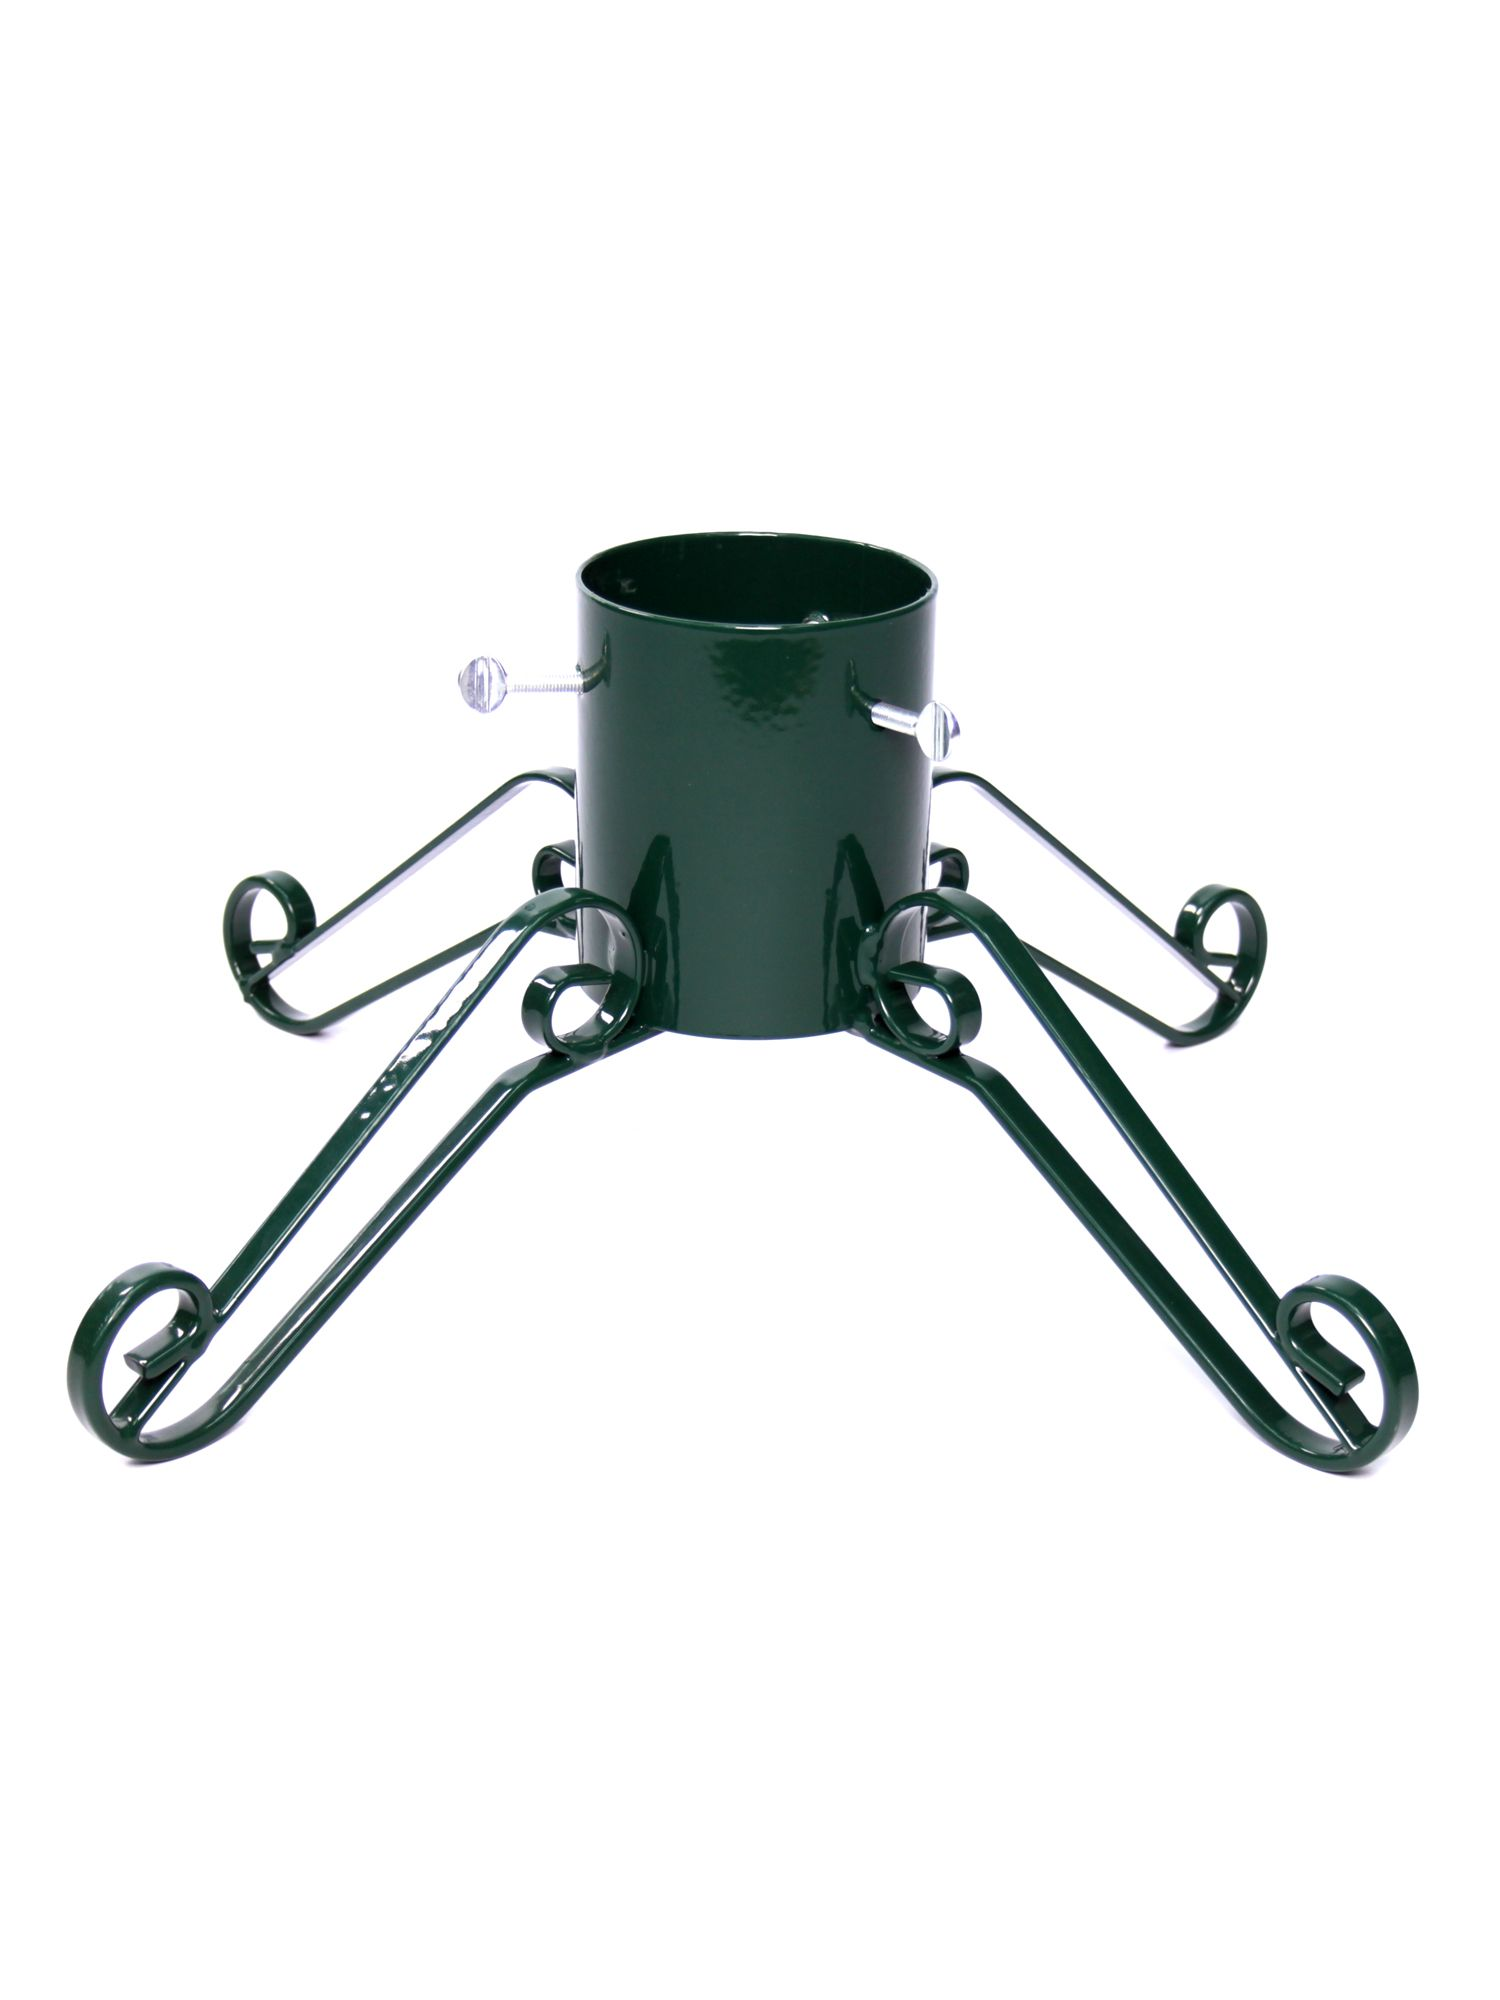 floric large christmas tree stand with water reservoir house of fraser - Small Christmas Tree Stand